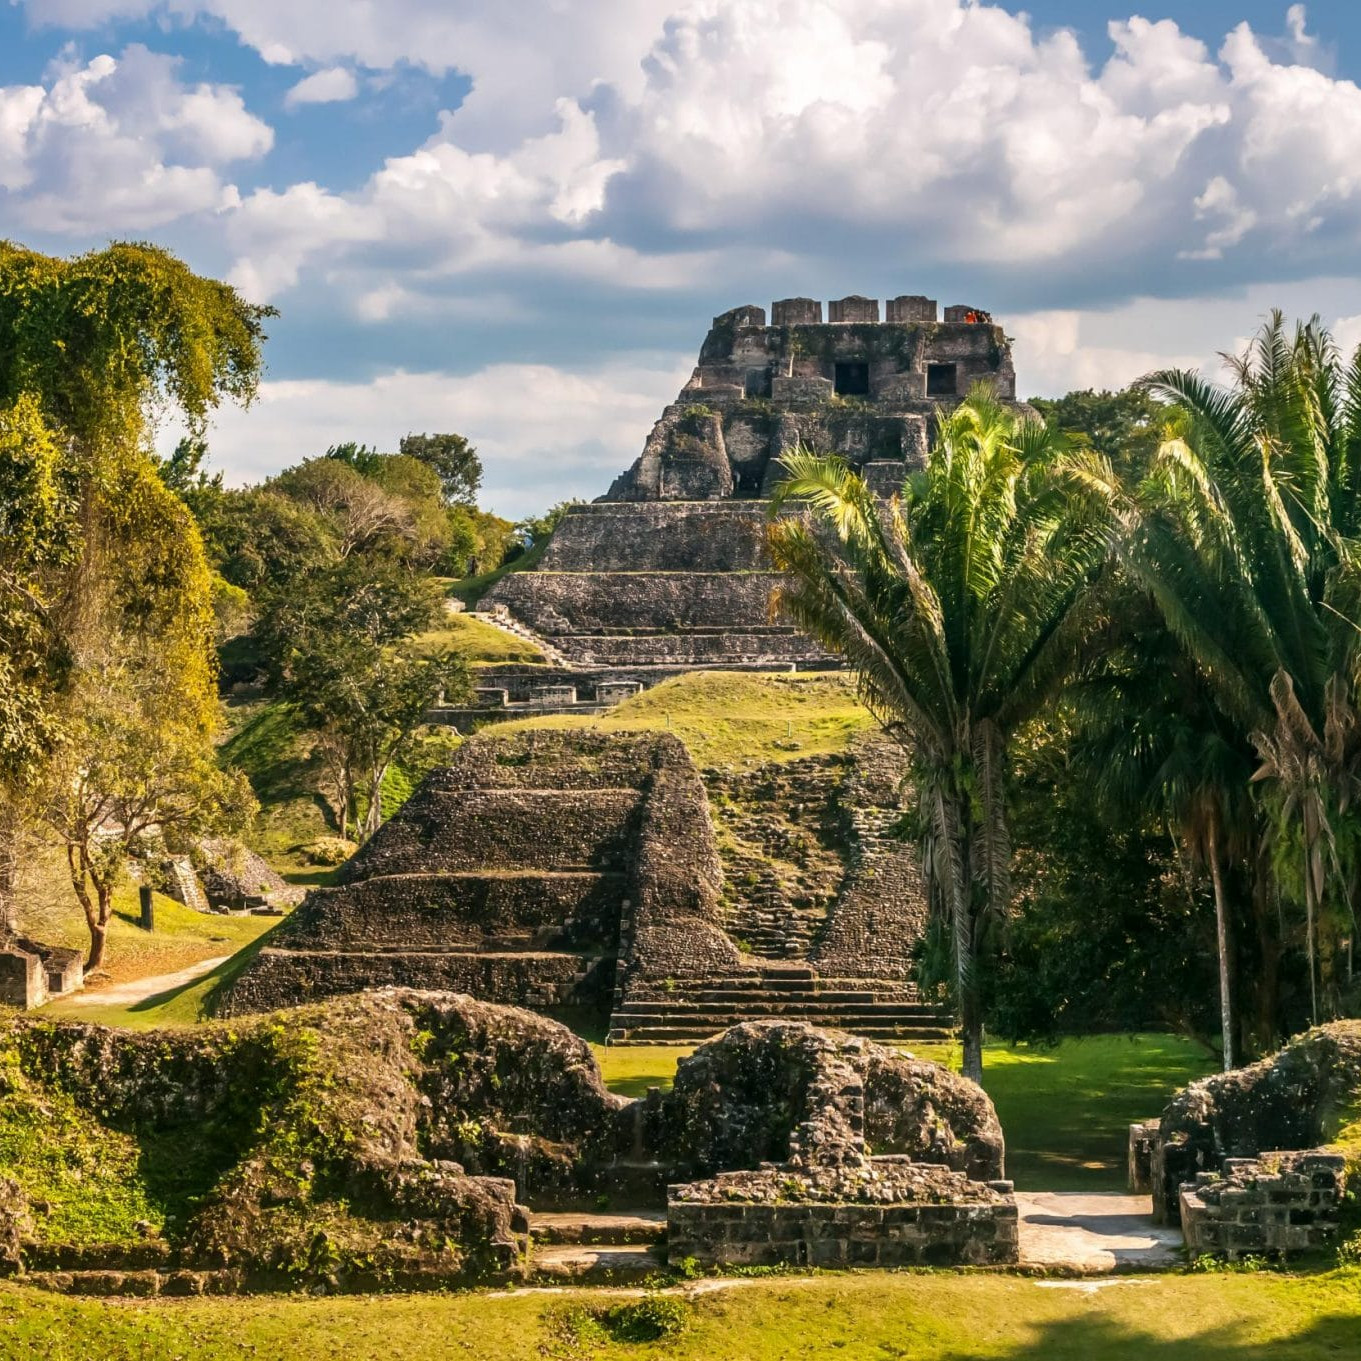 mayan ruins in central america